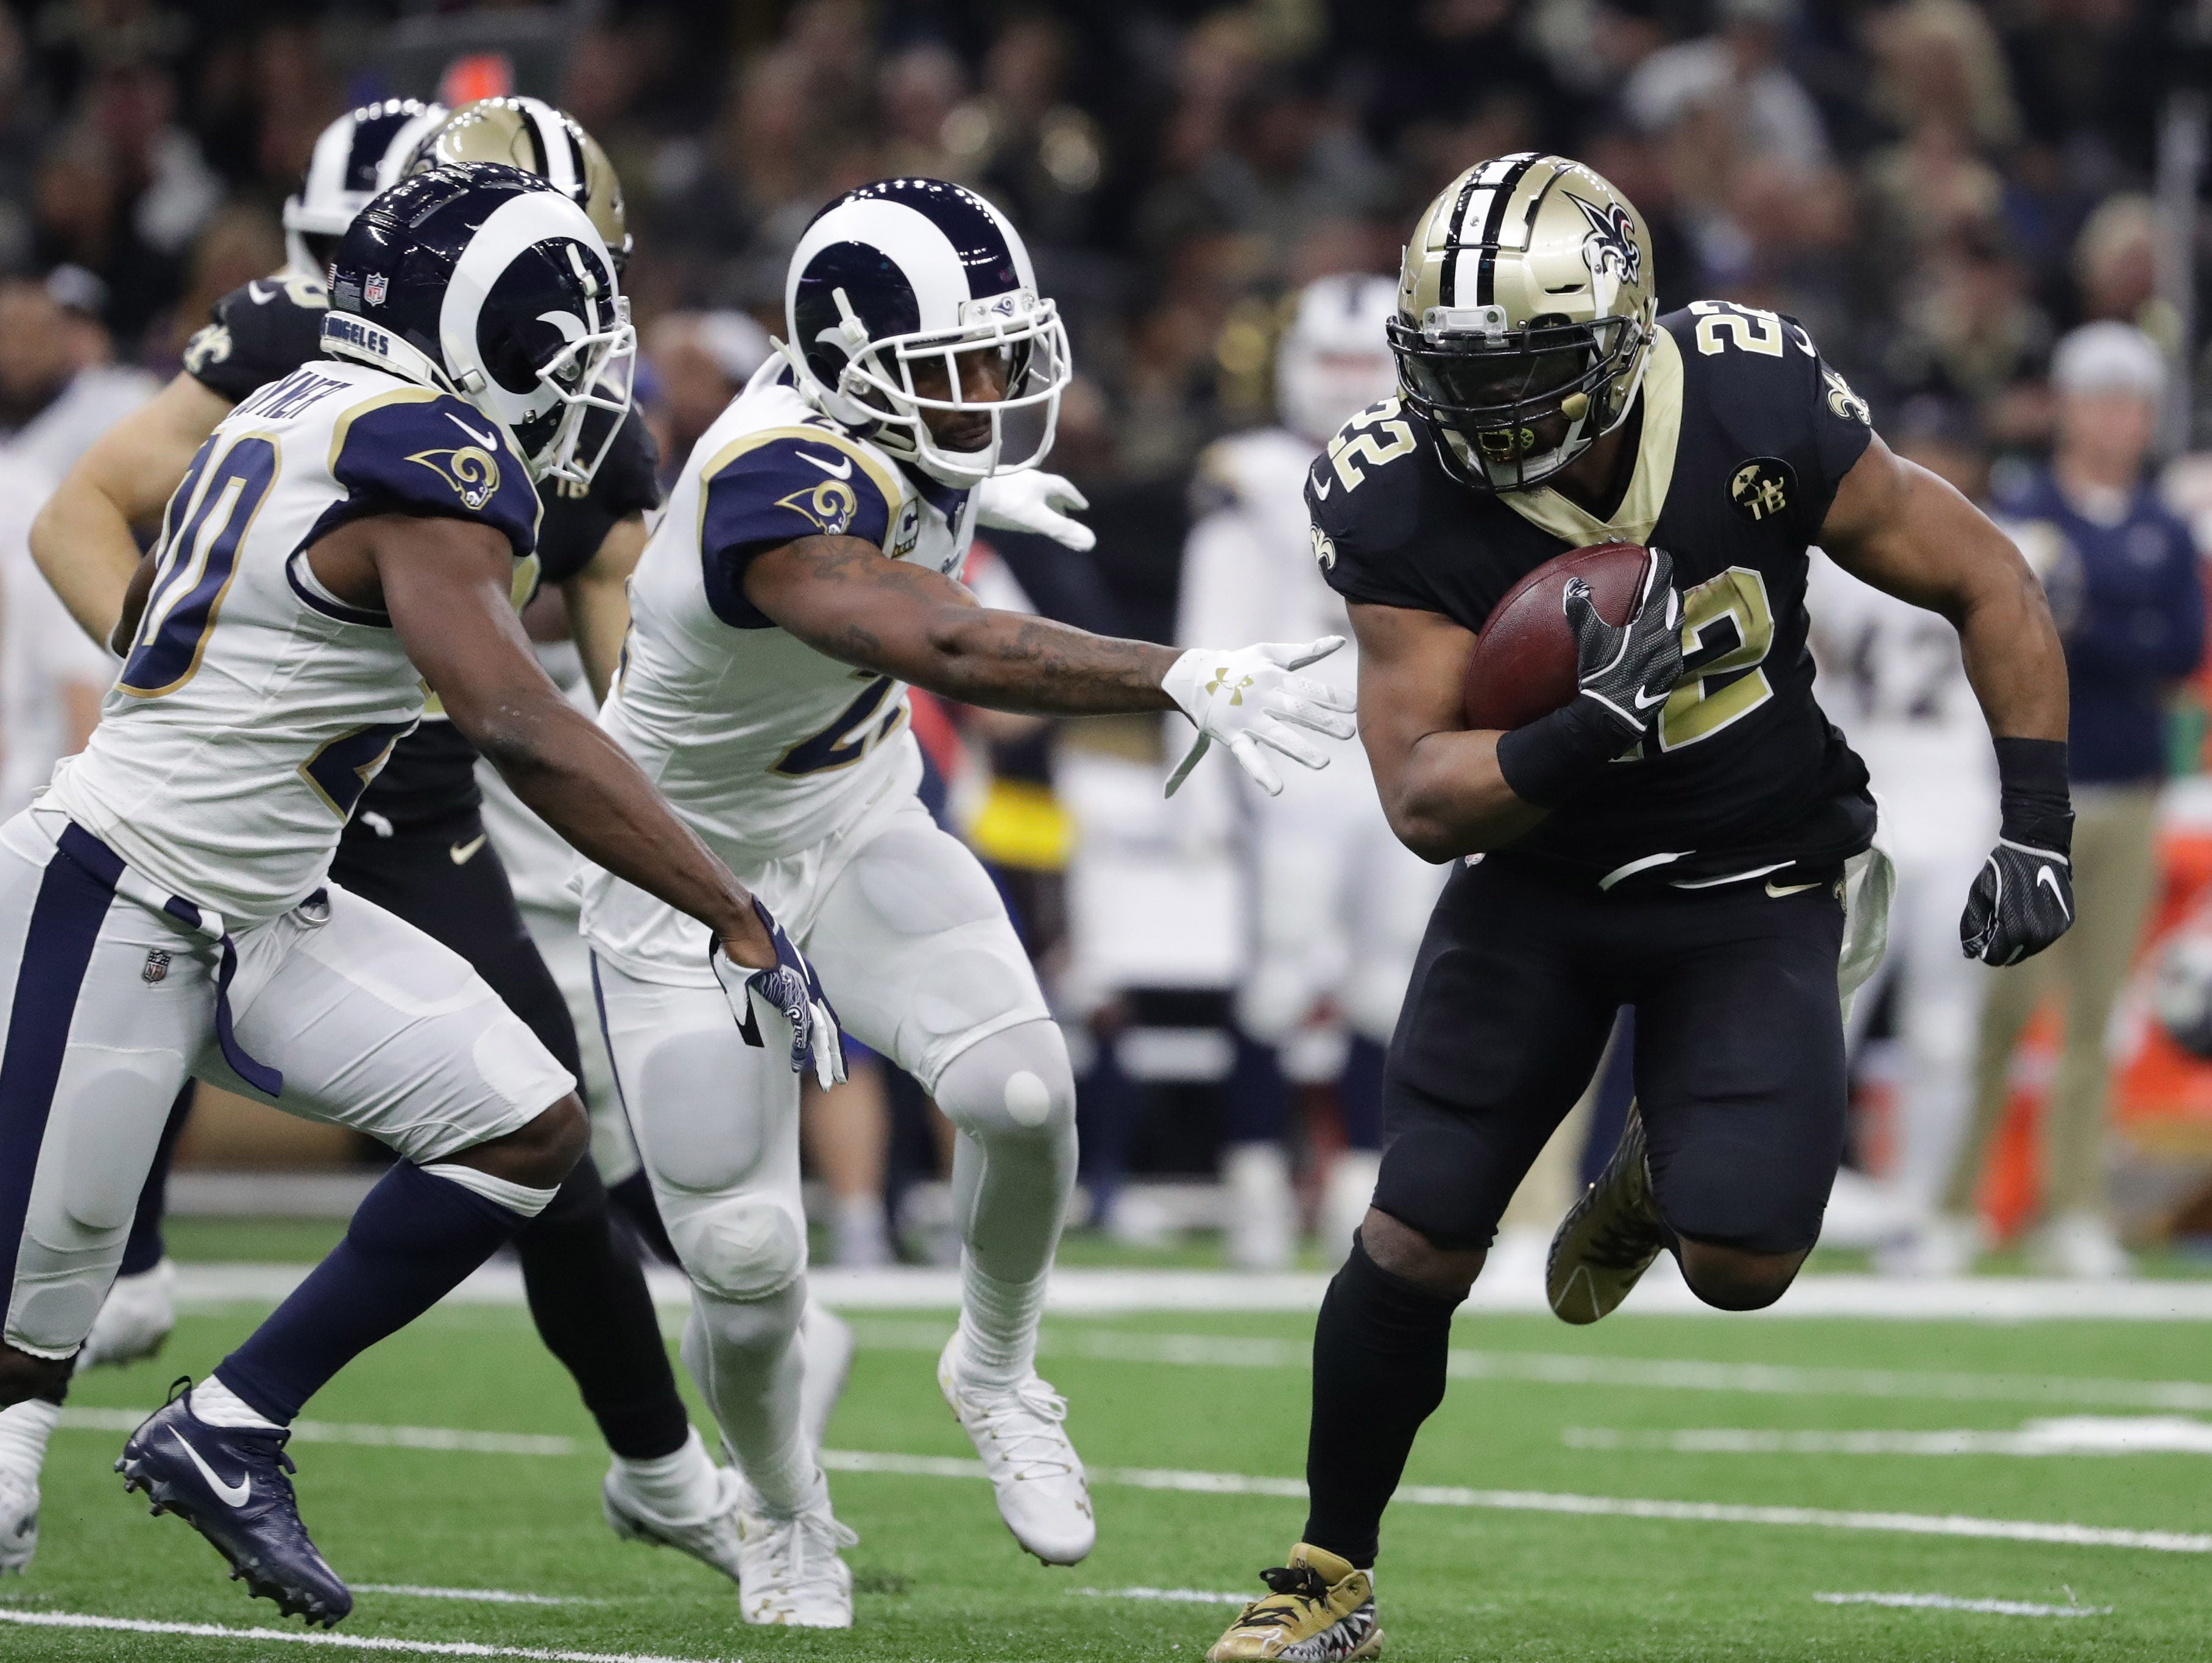 Jan 20, 2019; New Orleans, LA, USA; New Orleans Saints running back Mark Ingram (22) runs the ball against Los Angeles Rams free safety Lamarcus Joyner (20) and cornerback Aqib Talib (21) during the third quarter of the NFC Championship game at Mercedes-Benz Superdome. Mandatory Credit: Derick E. Hingle-USA TODAY Sports